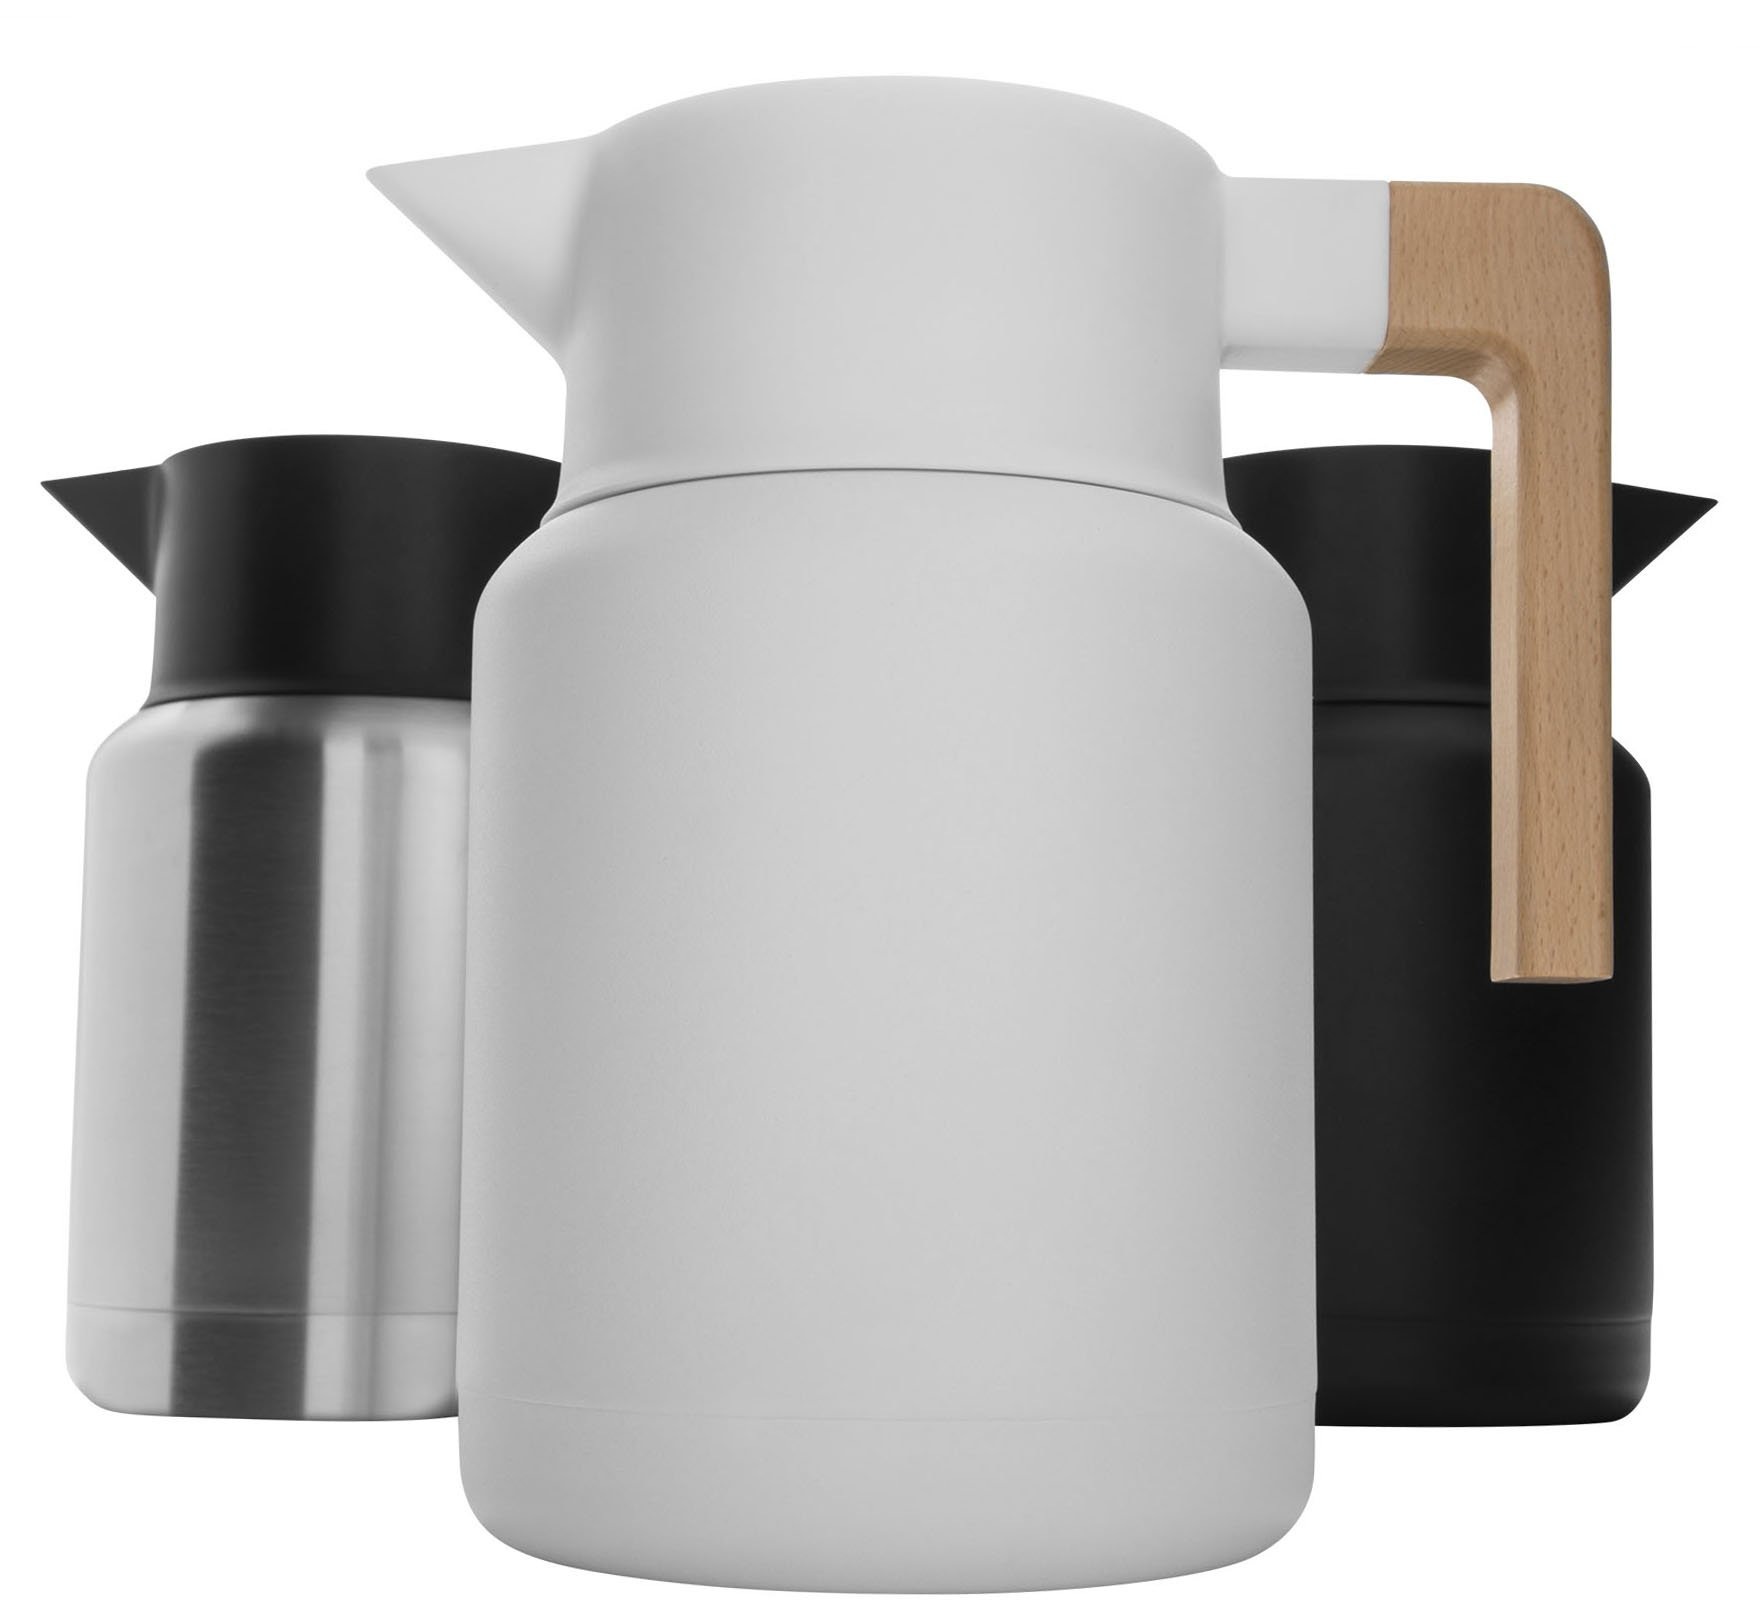 Large Thermal Coffee Carafe - Stainless Steel, Double Walled Thermal Pots For Coffee and Teas by Hastings Collective - White, Vacuum Carafes With Removable Tea Infuser and Strainer | 50 Oz. by Hastings Collective